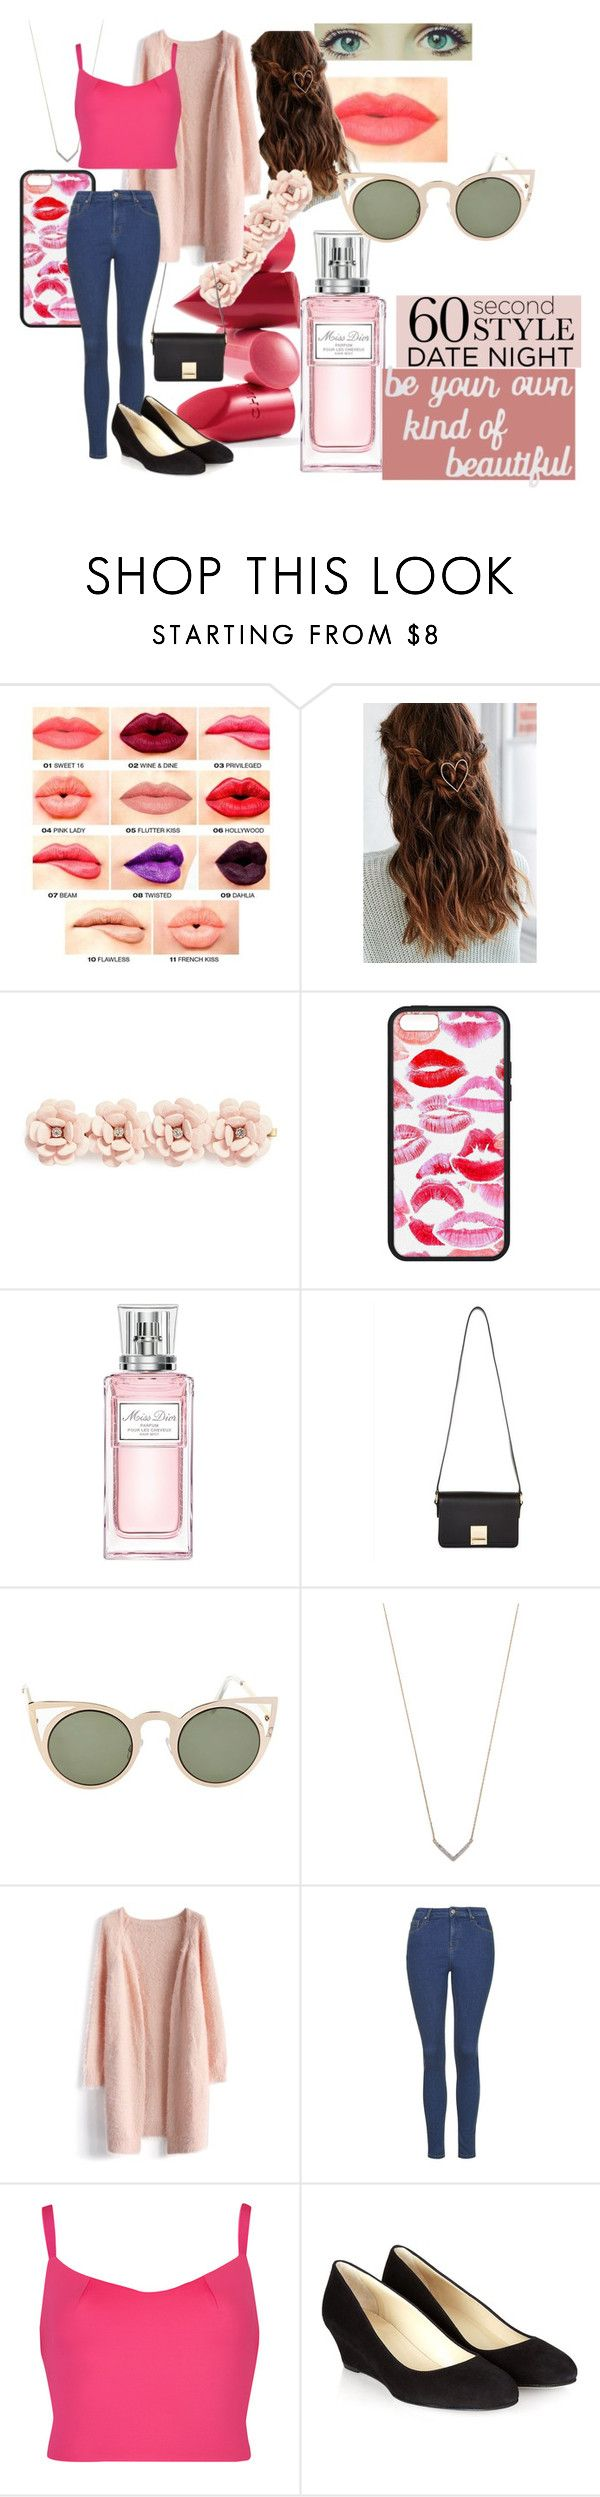 """60 Second Style: Date Night"" by jprosemac ❤ liked on Polyvore featuring NYX, Rossetto, J.Crew, Christian Dior, Jaeger, Betsey Johnson, Adina Reyter, Chicwish, Ted Baker and Hobbs"